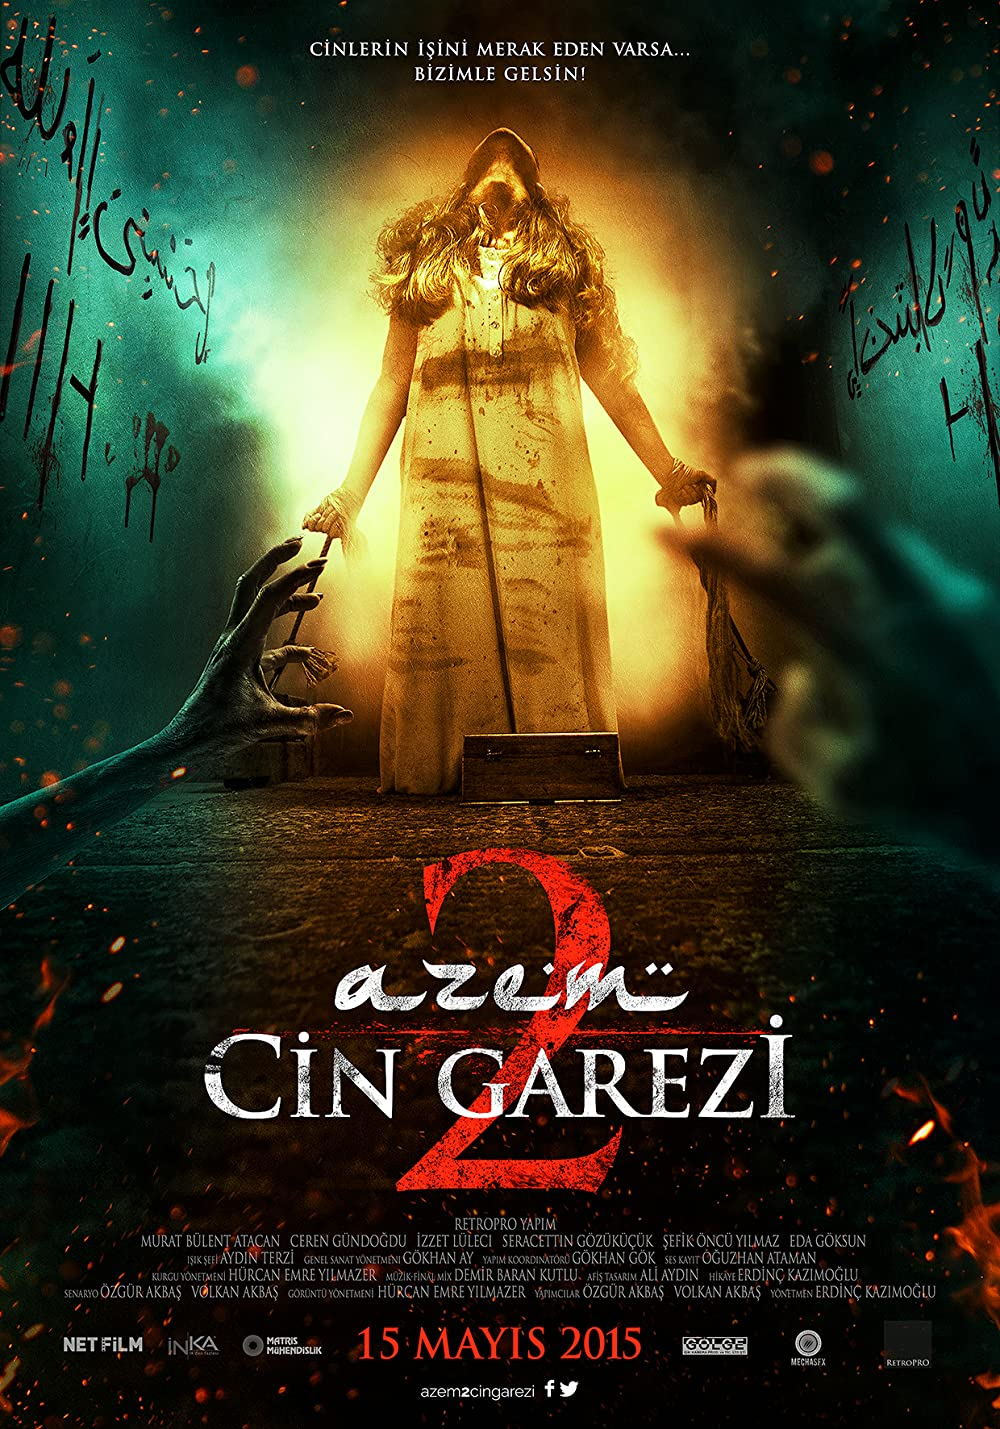 Azem 2: Cin Garezi 2015 Hindi Dual Audio 300MB HDRip ESubs Download